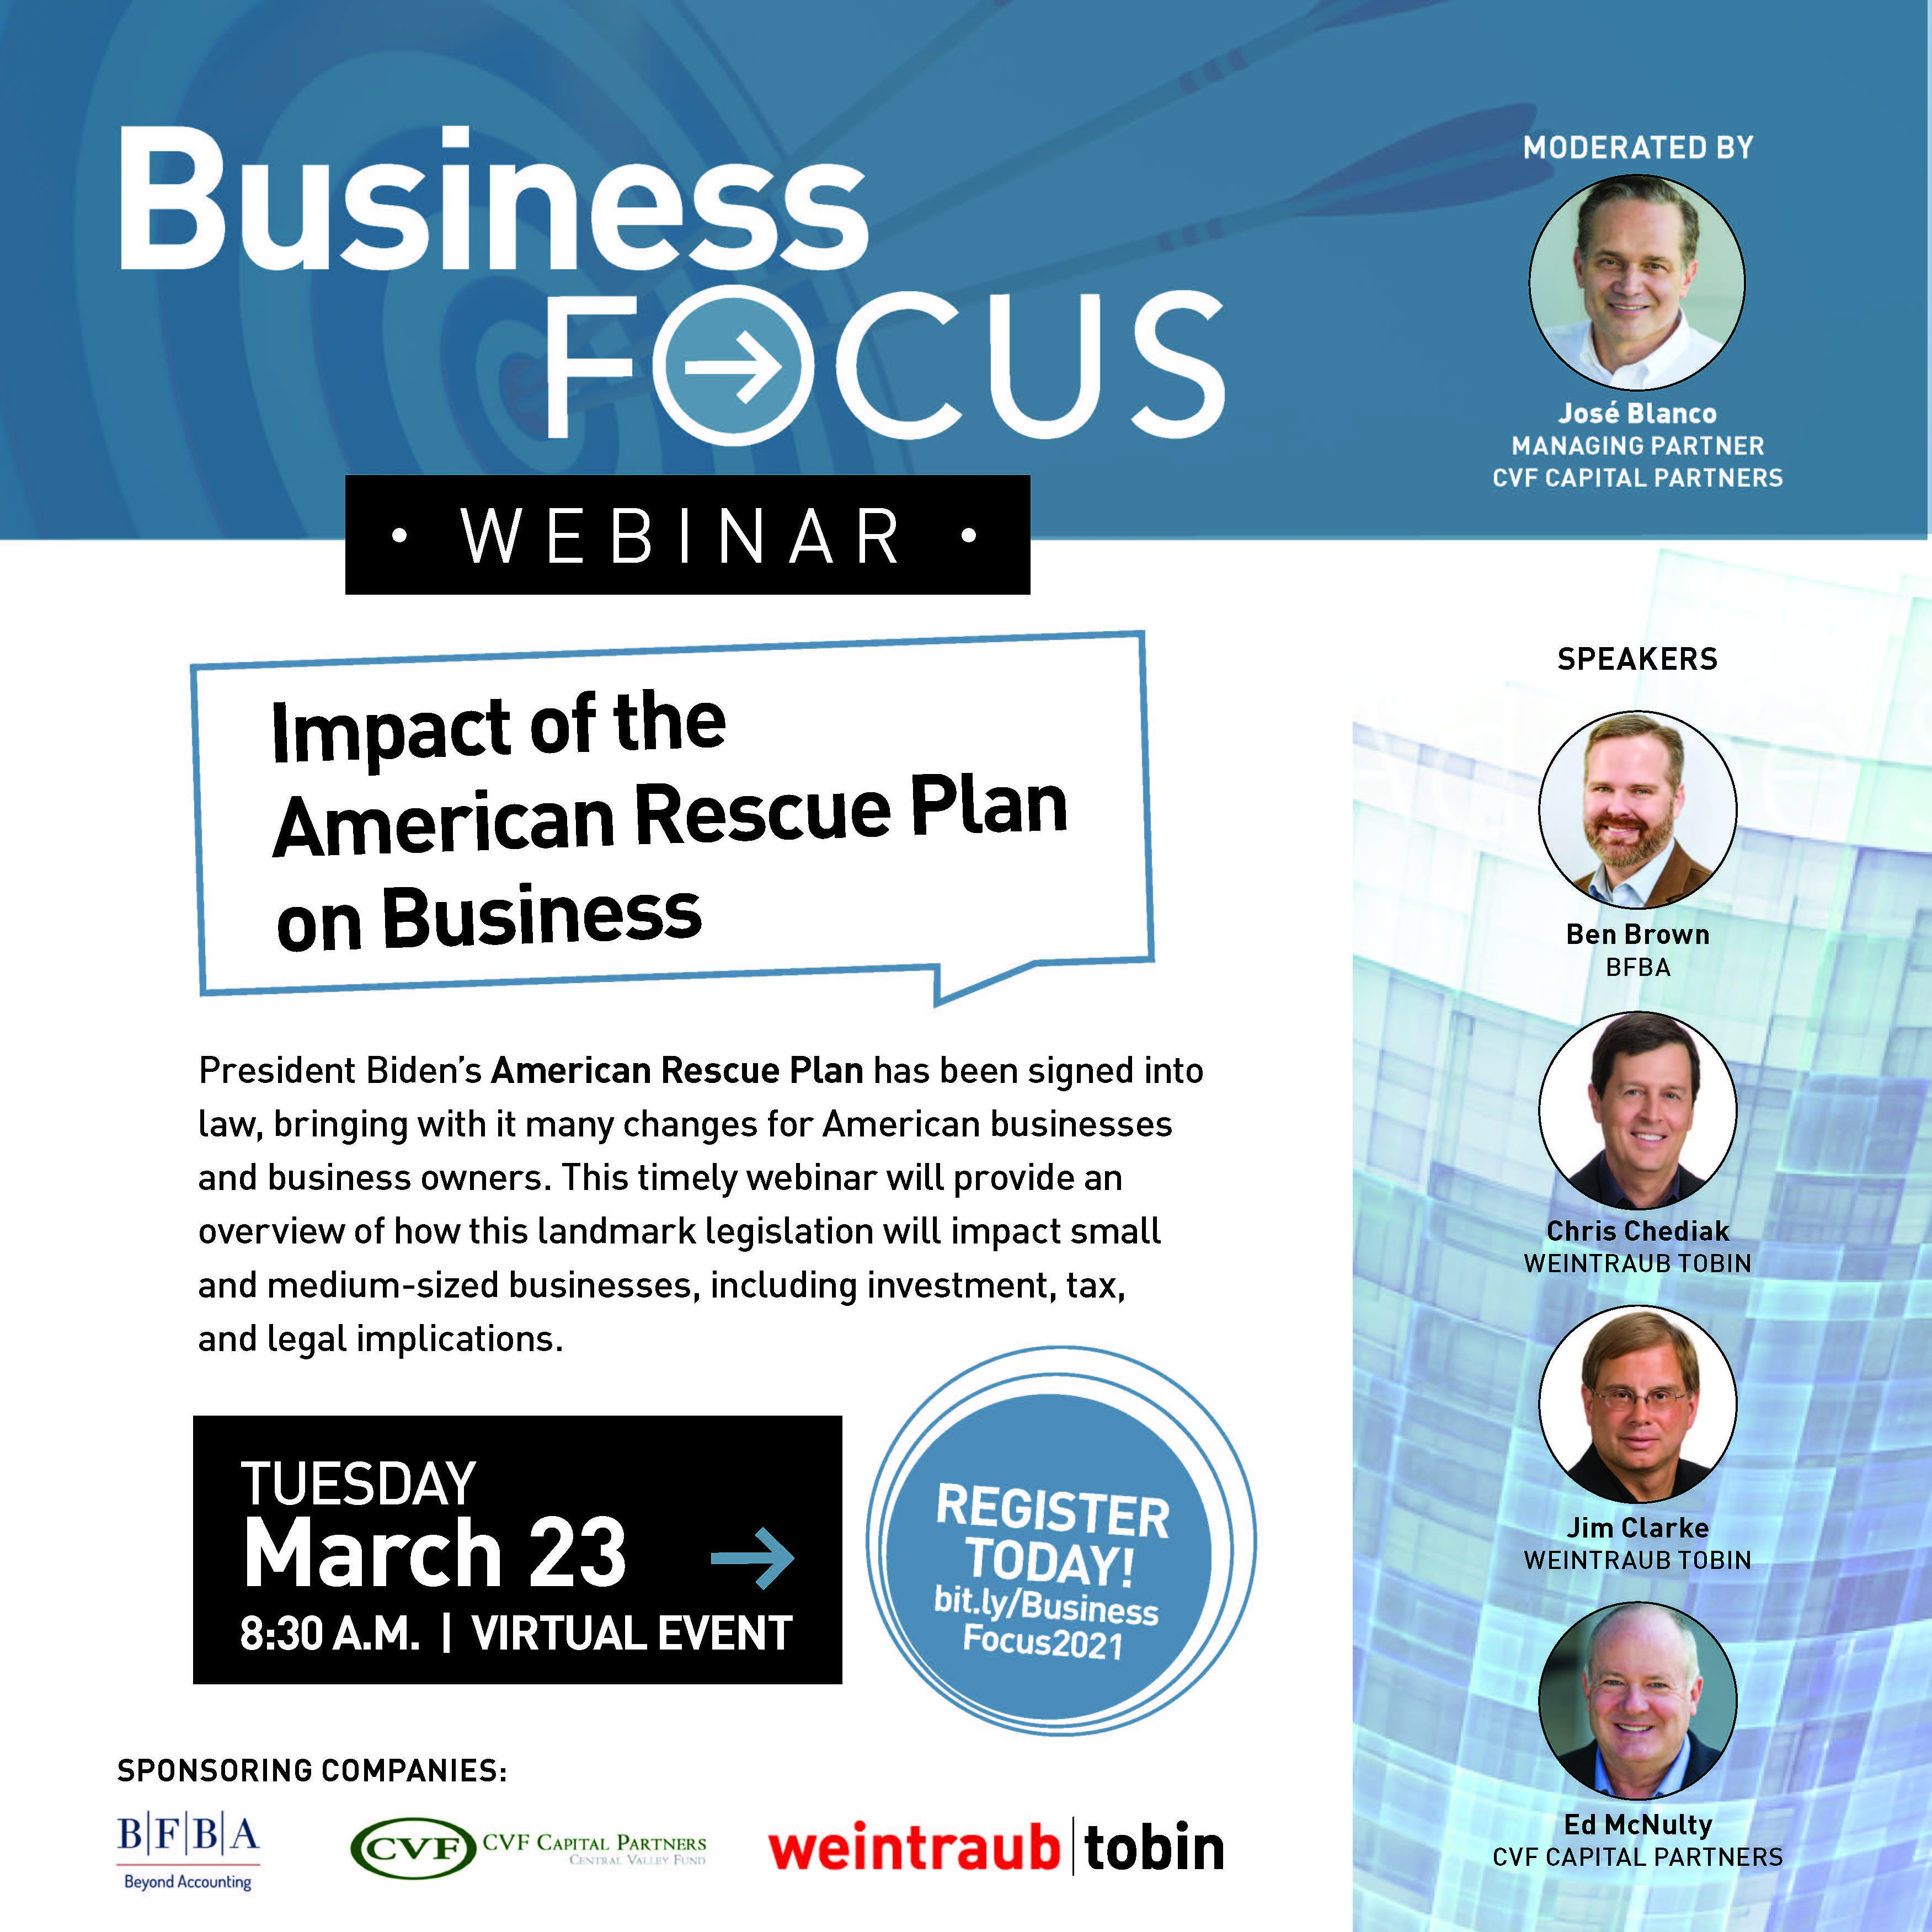 Business-Focus-American-Rescue-Plan-Webinar-Flyer-3-23-21.jpg